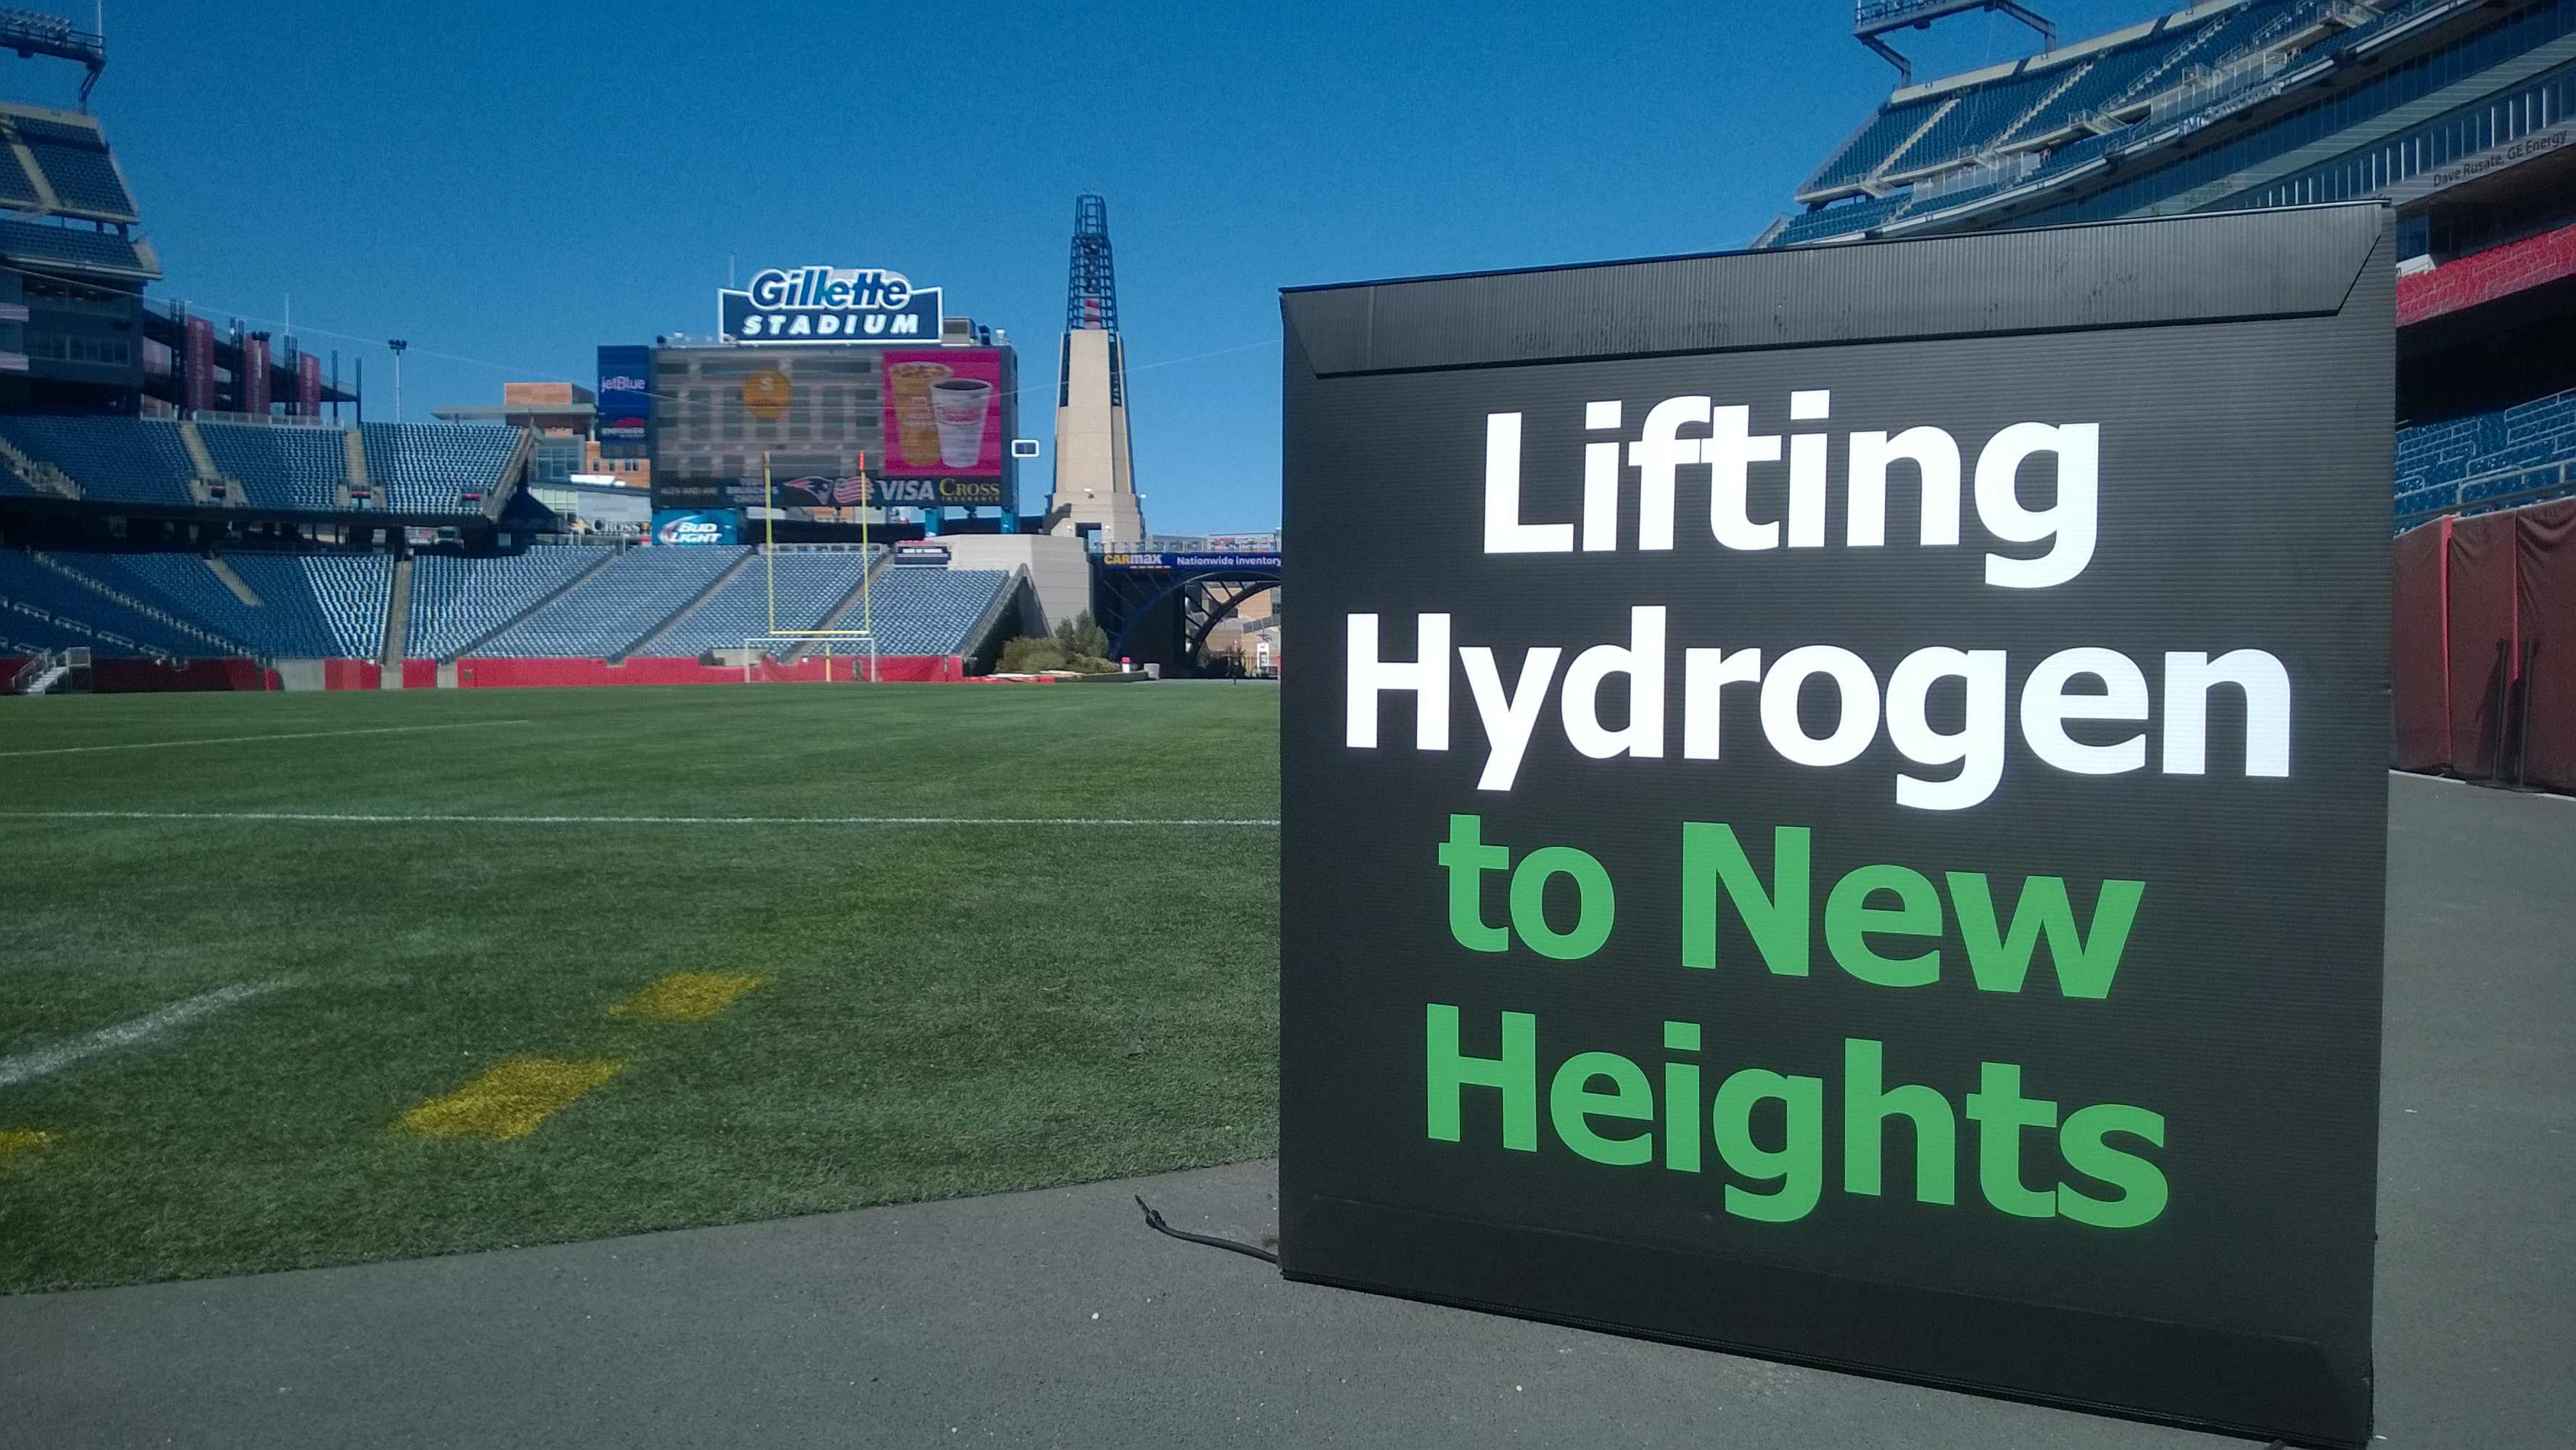 Nuvera to be at Gillette Stadium with All-In Fuel Cell Solutions